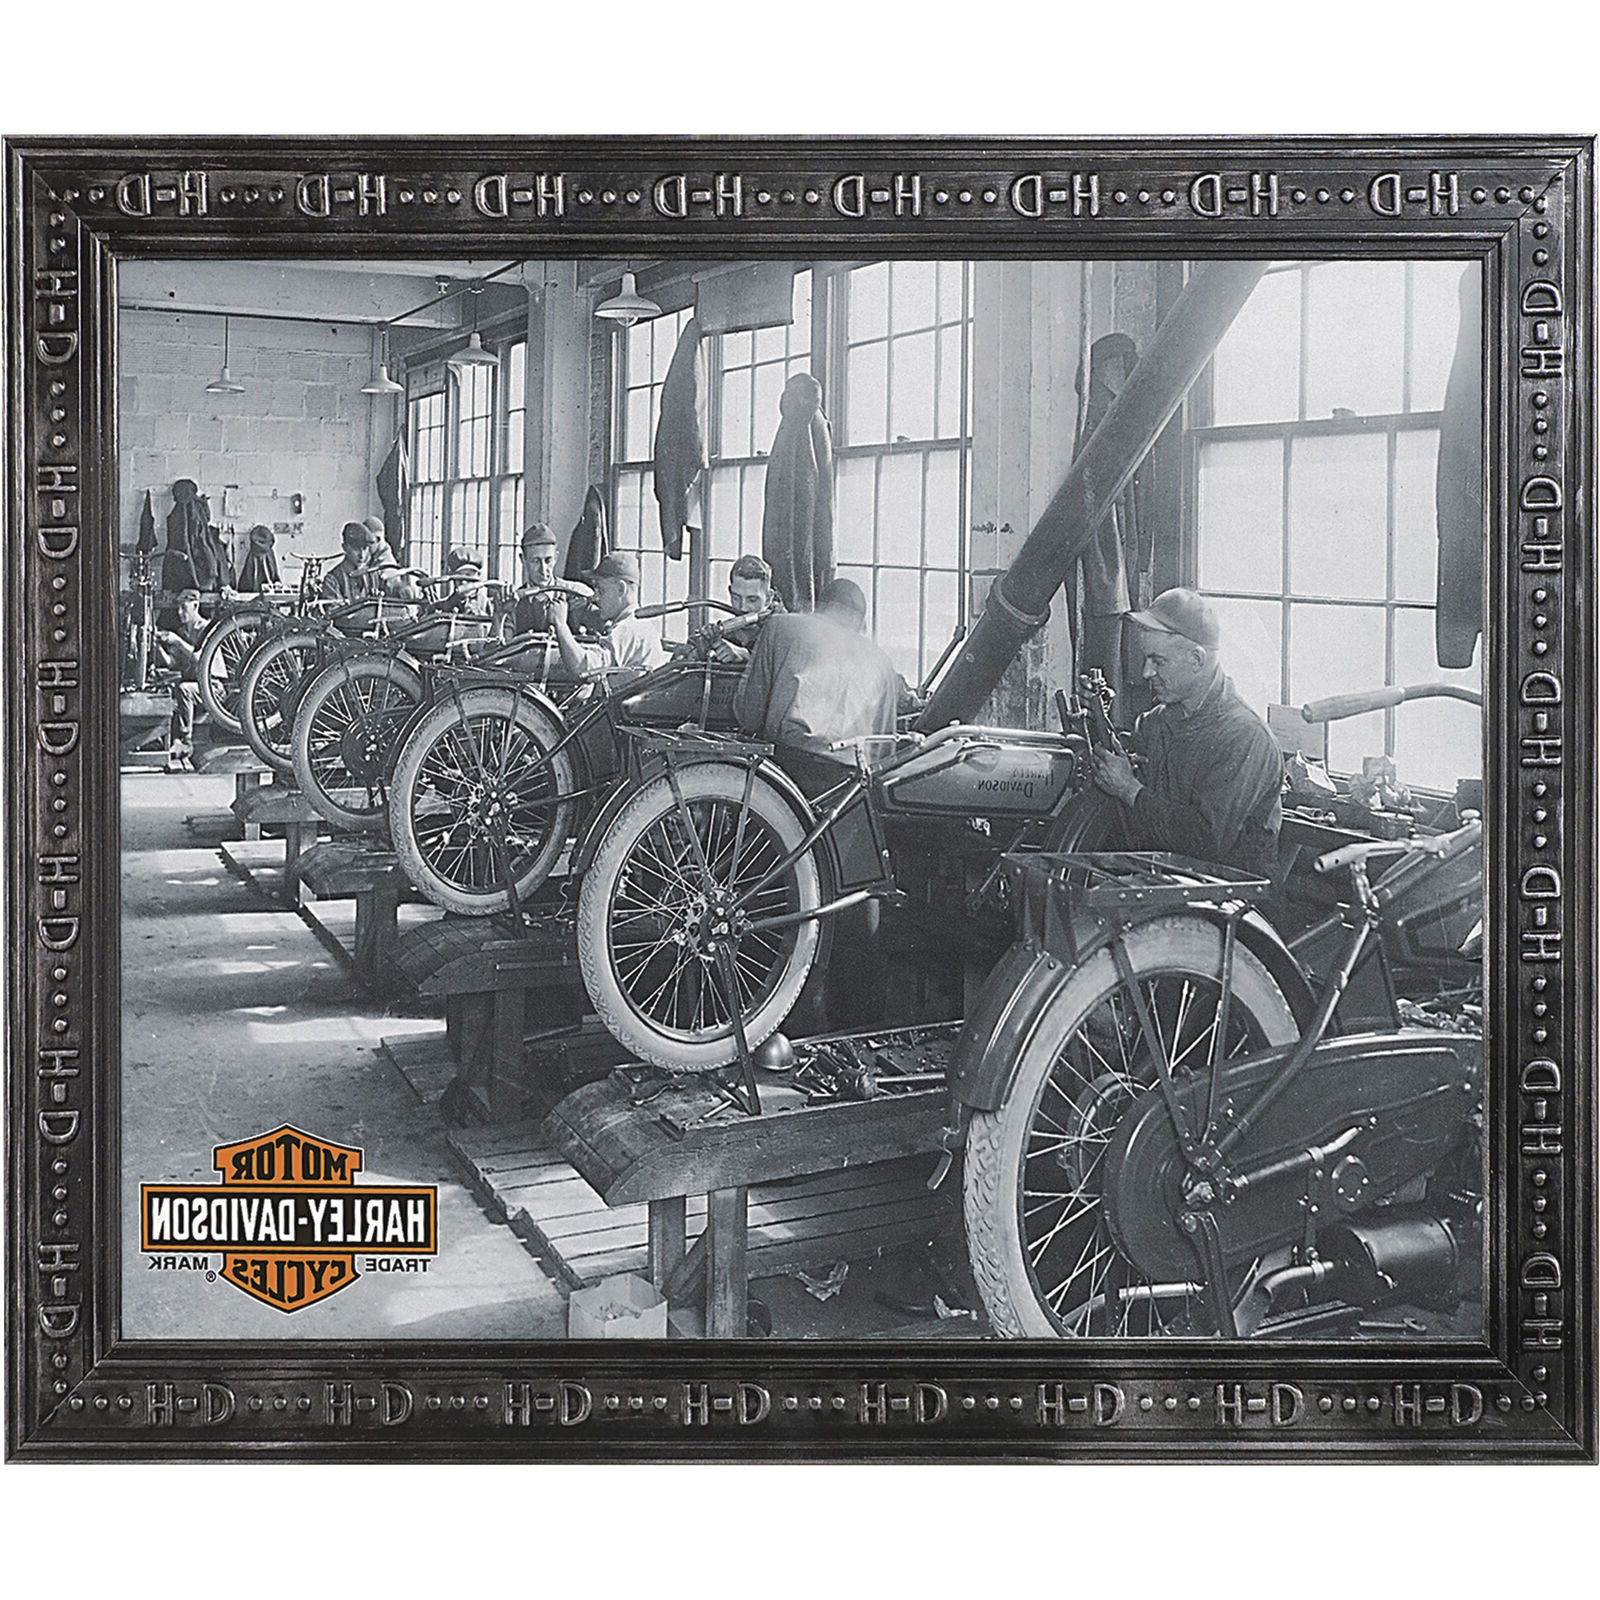 Famous Harley Davidson Nostalgic Retro Factory Shop Scene Framed Wall Mirror Home Décor Intended For Harley Davidson Wall Mirrors (View 6 of 20)